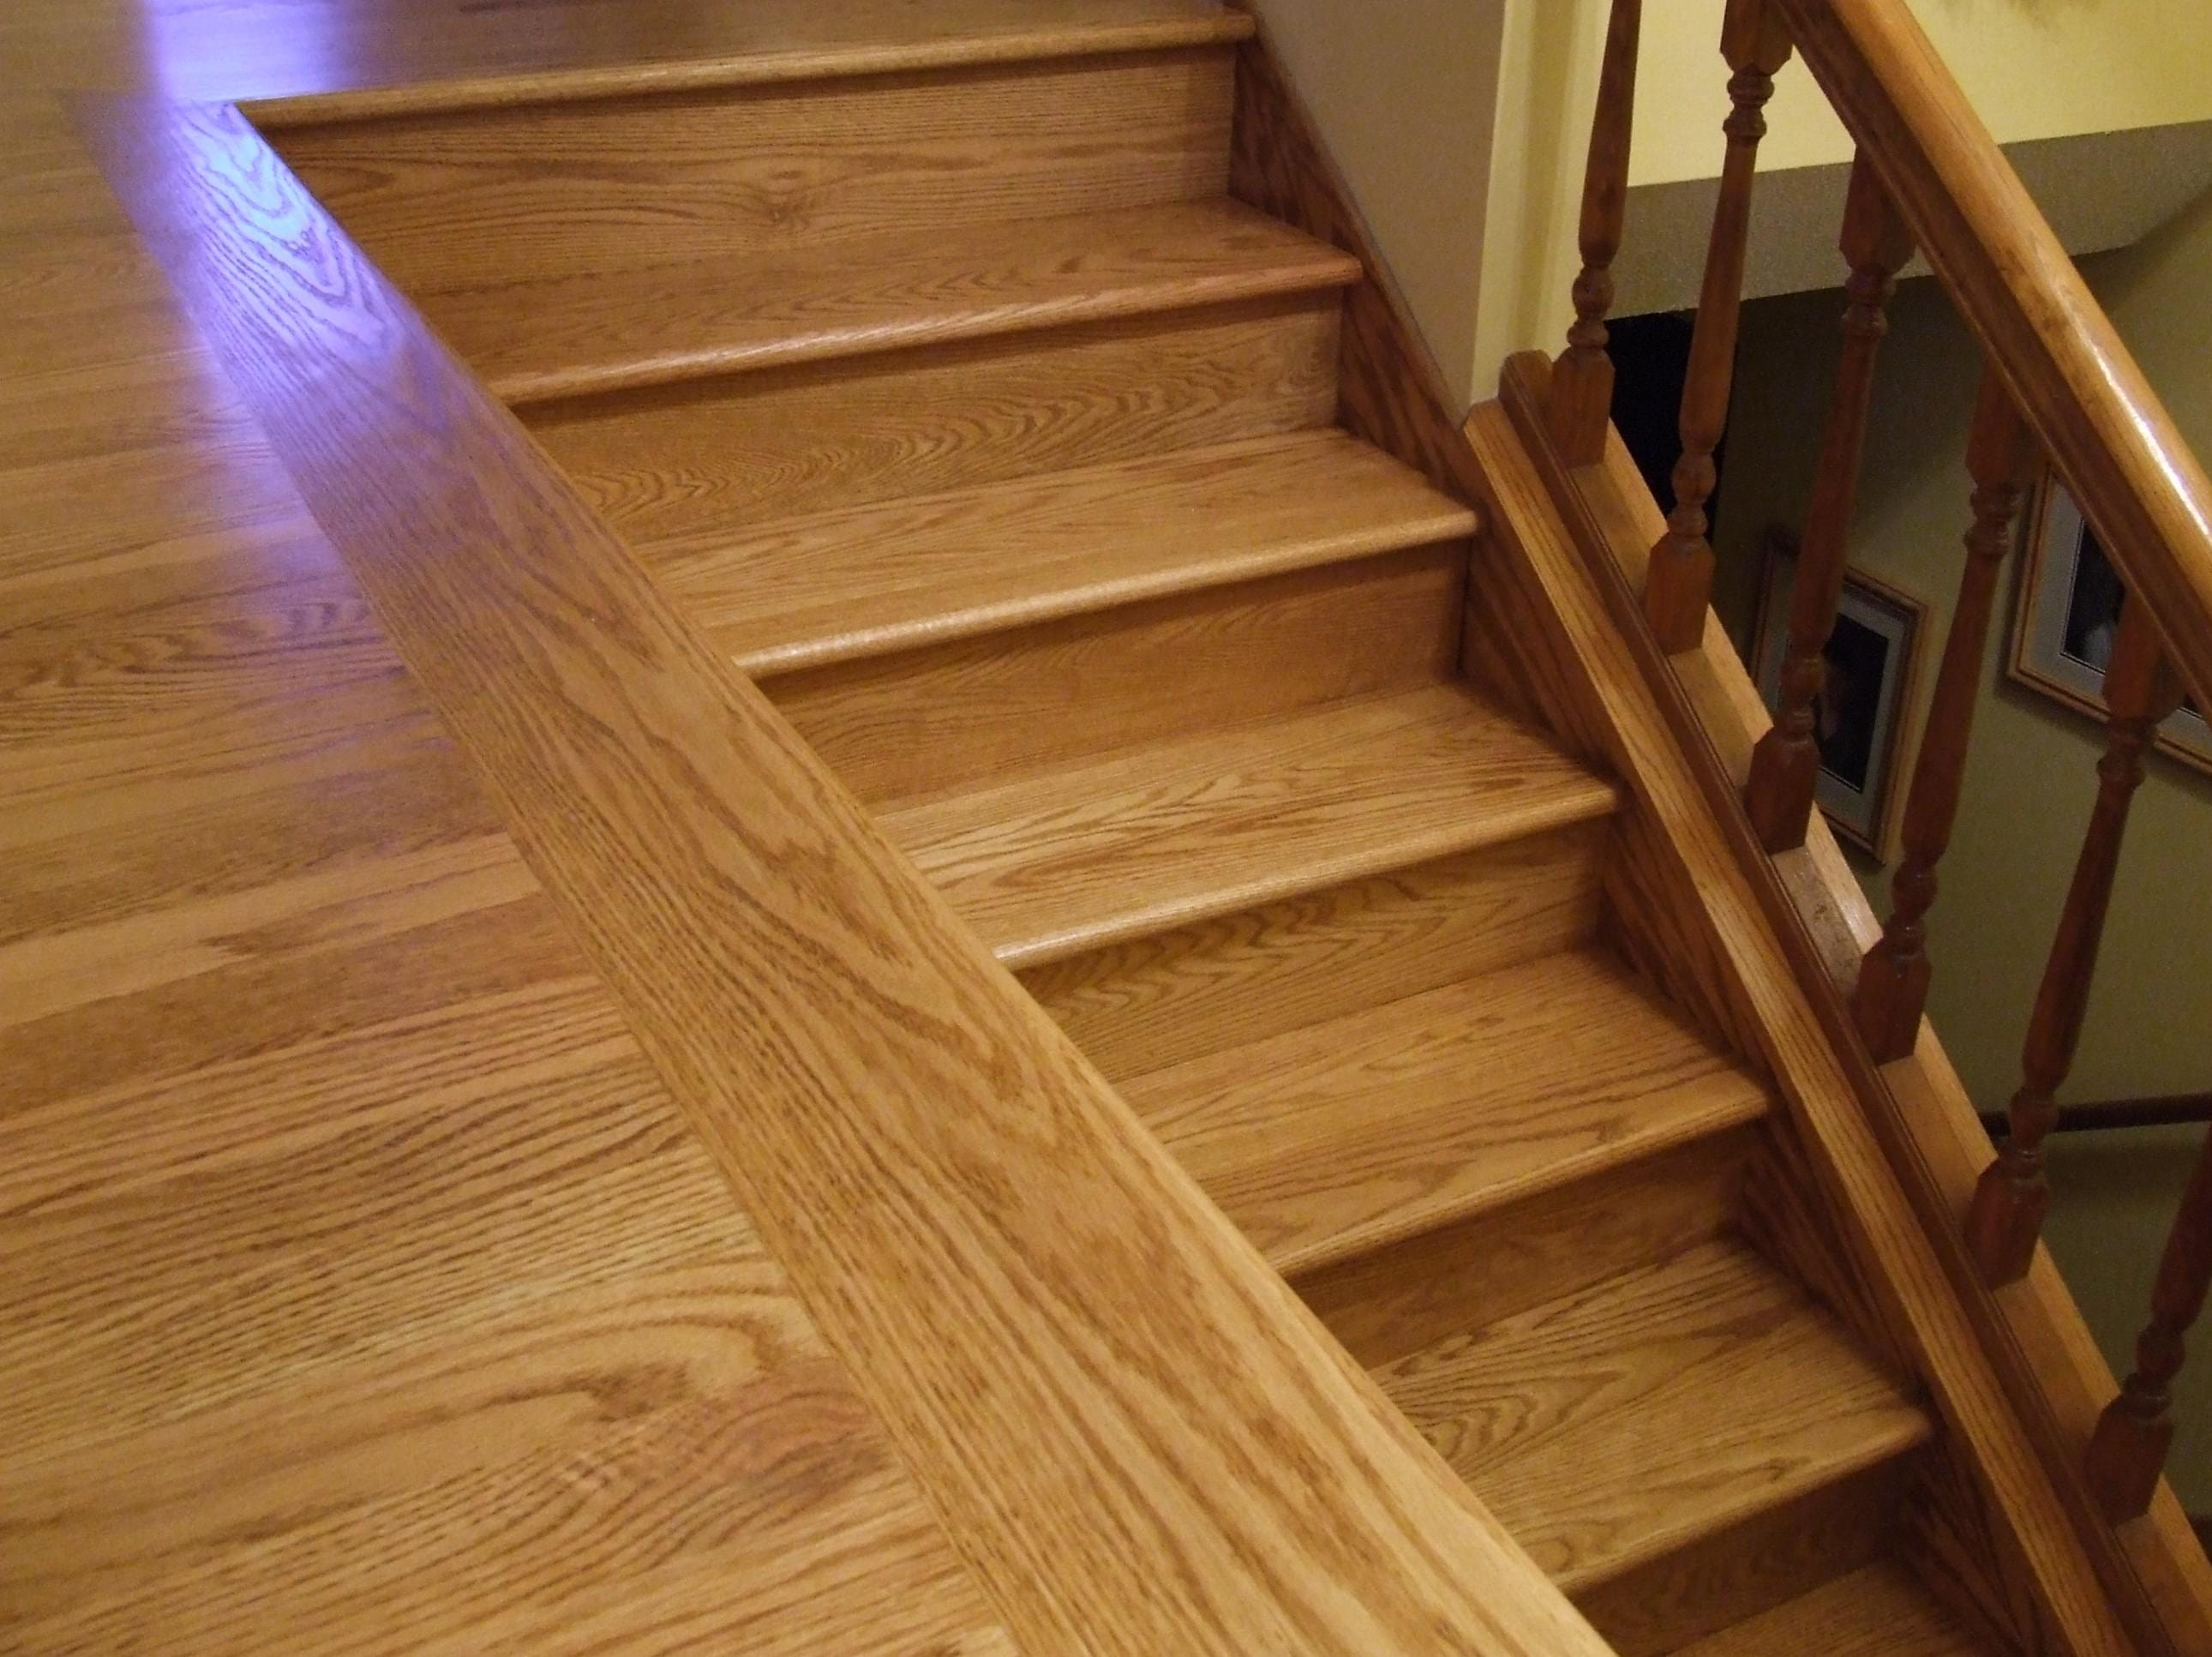 Installing hardwood floors is explained in detail for Laying hardwood floors